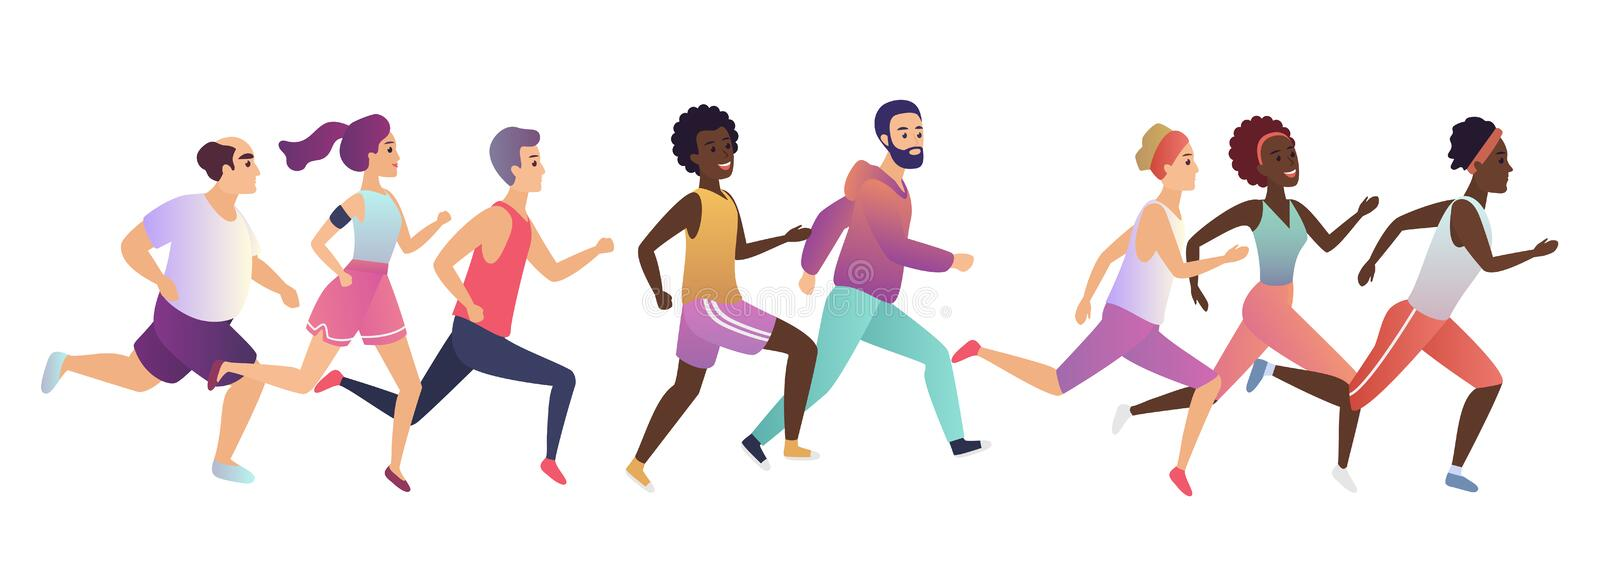 Jogging running people. Sport running group concept. Various people runners group in motion speed. vector illustration